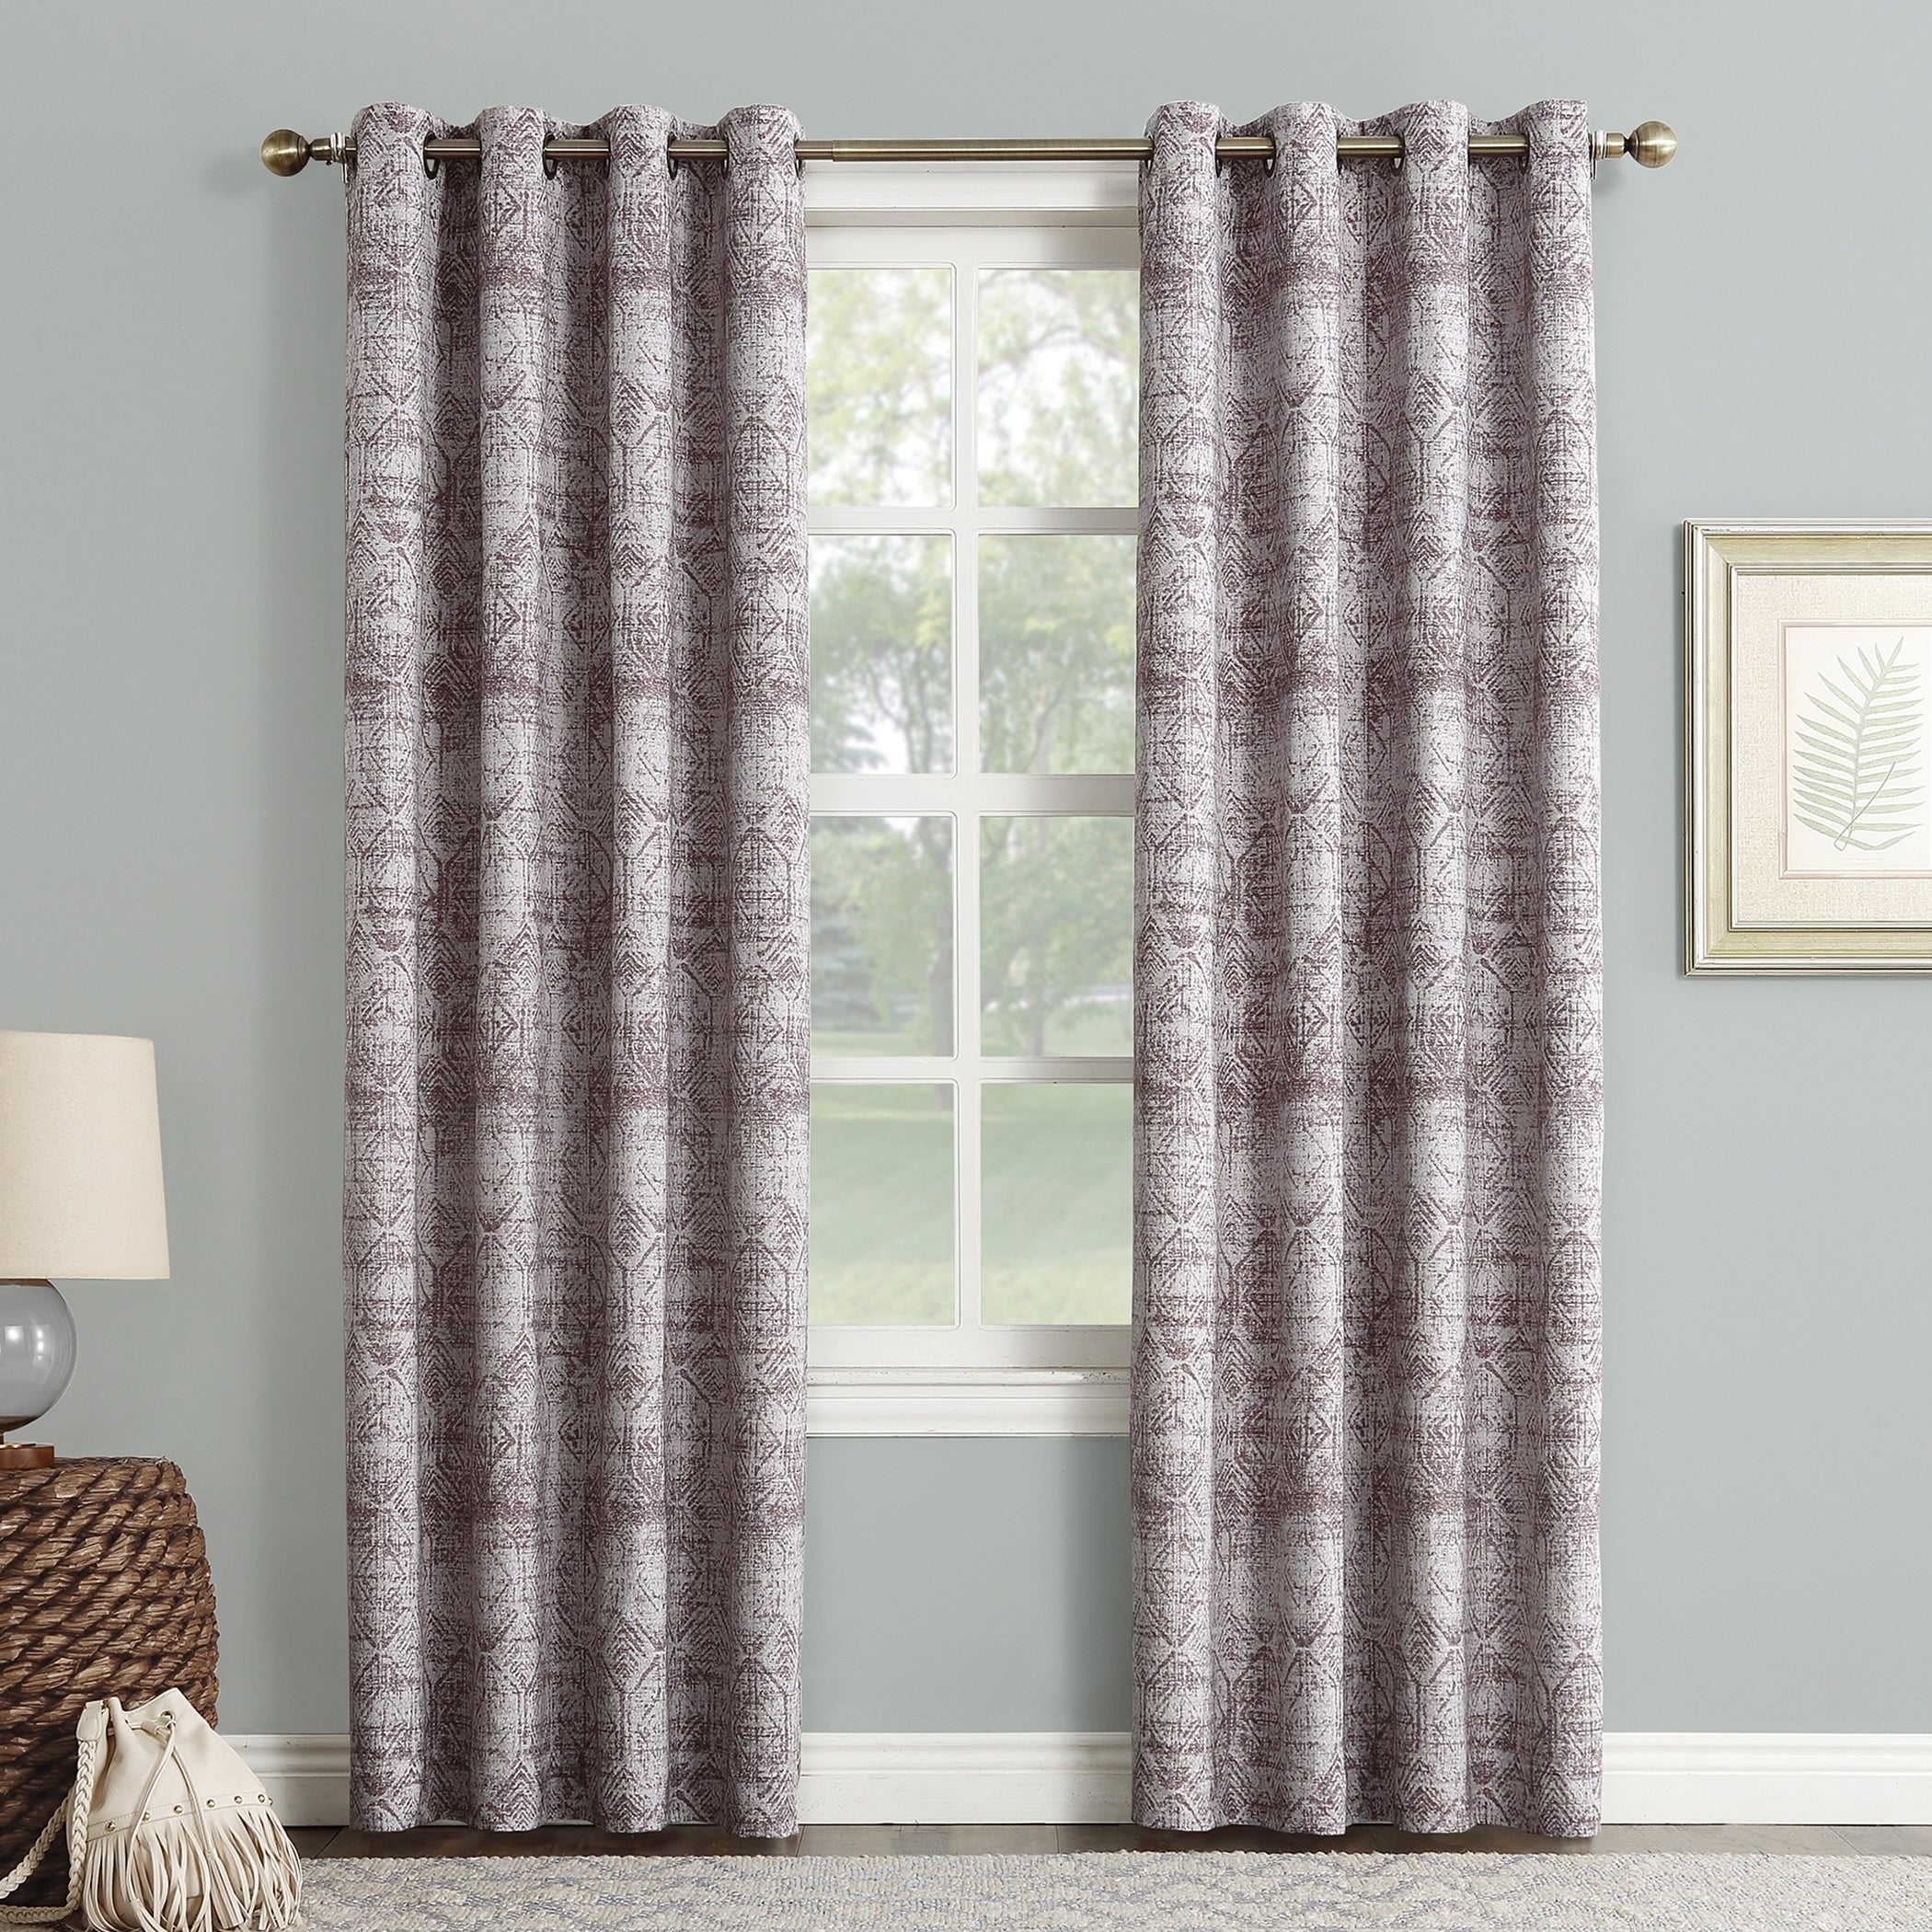 curtains grommet pair grey length bedroom gray overlay top walmart design incredible aurora lace cheap panel room curtain white home size blackout living in inches